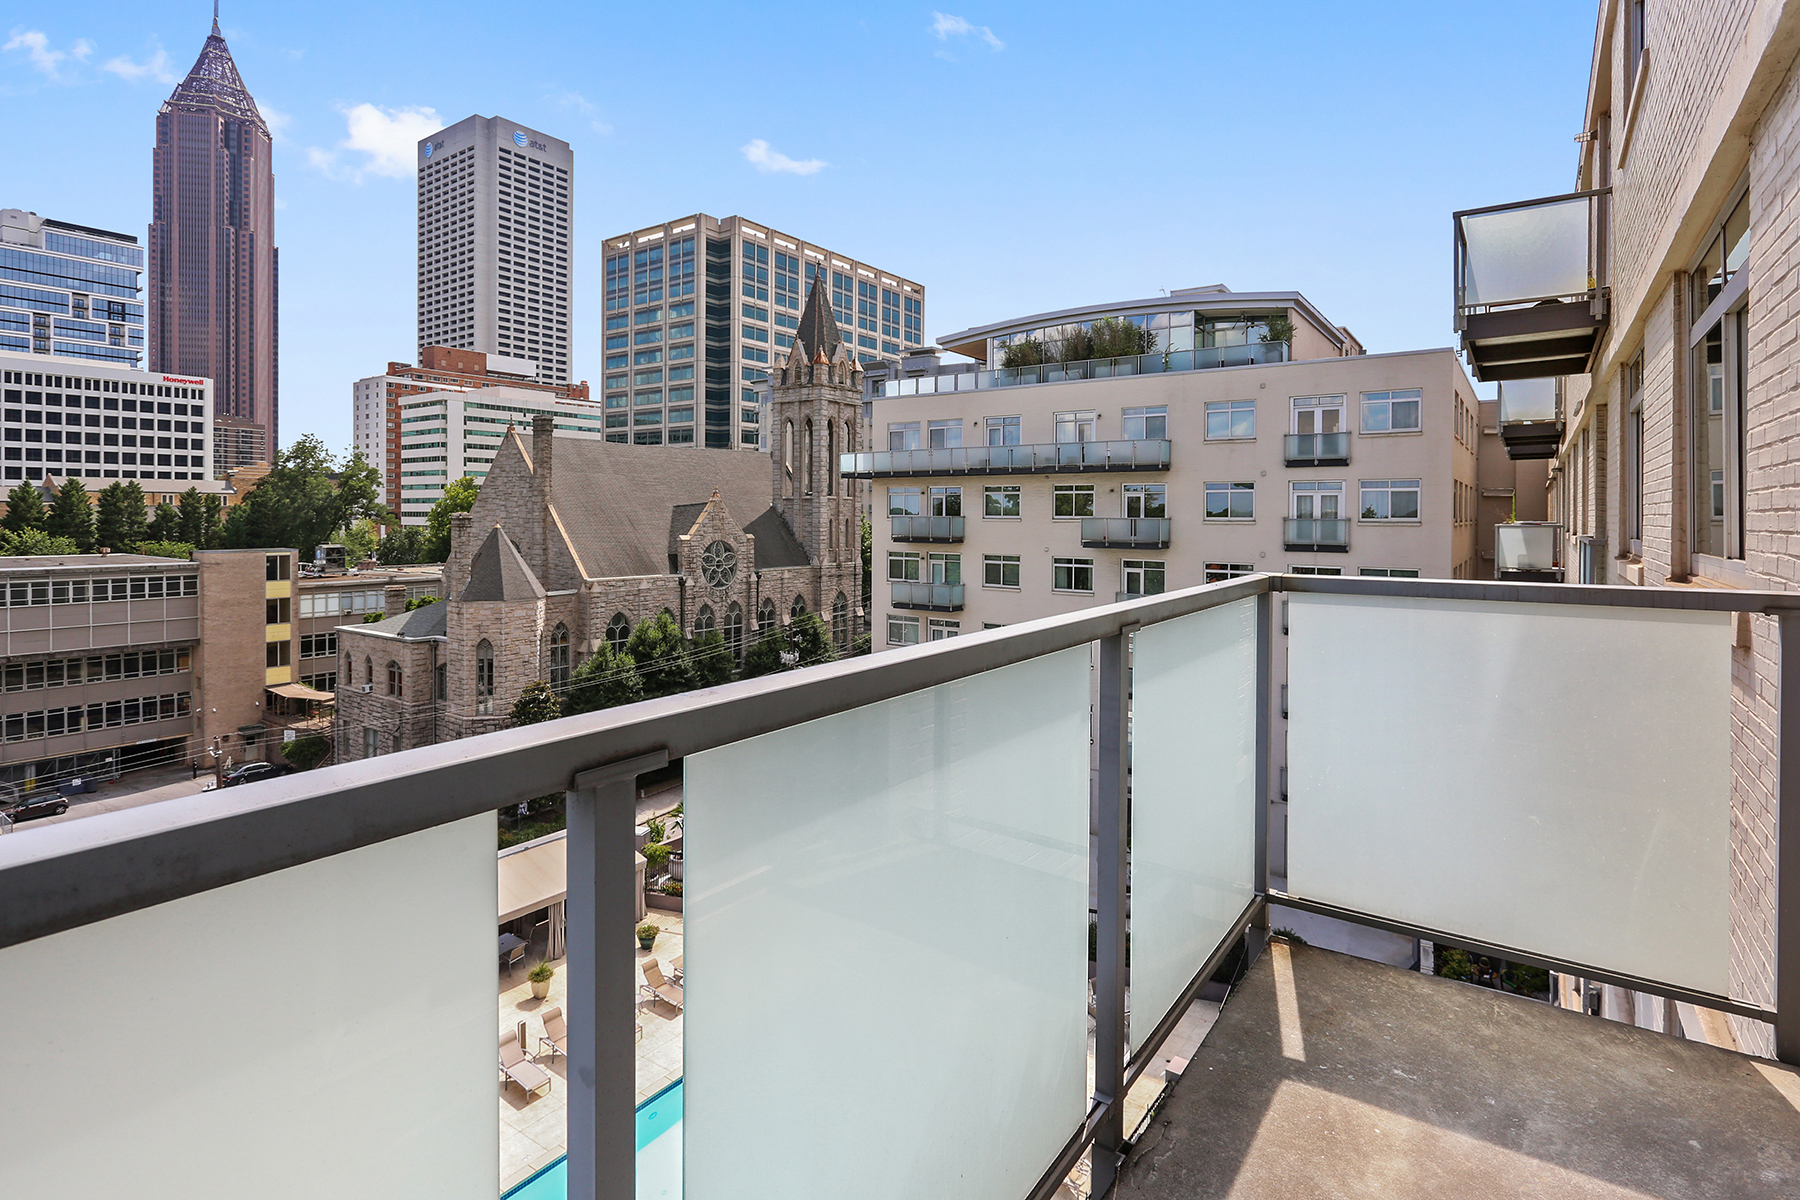 Additional photo for property listing at Meticulous and Thoughtful Renovation of Expansive Combination Unit 805 Peachtree Street NE #504 Atlanta, Georgia 30308 United States